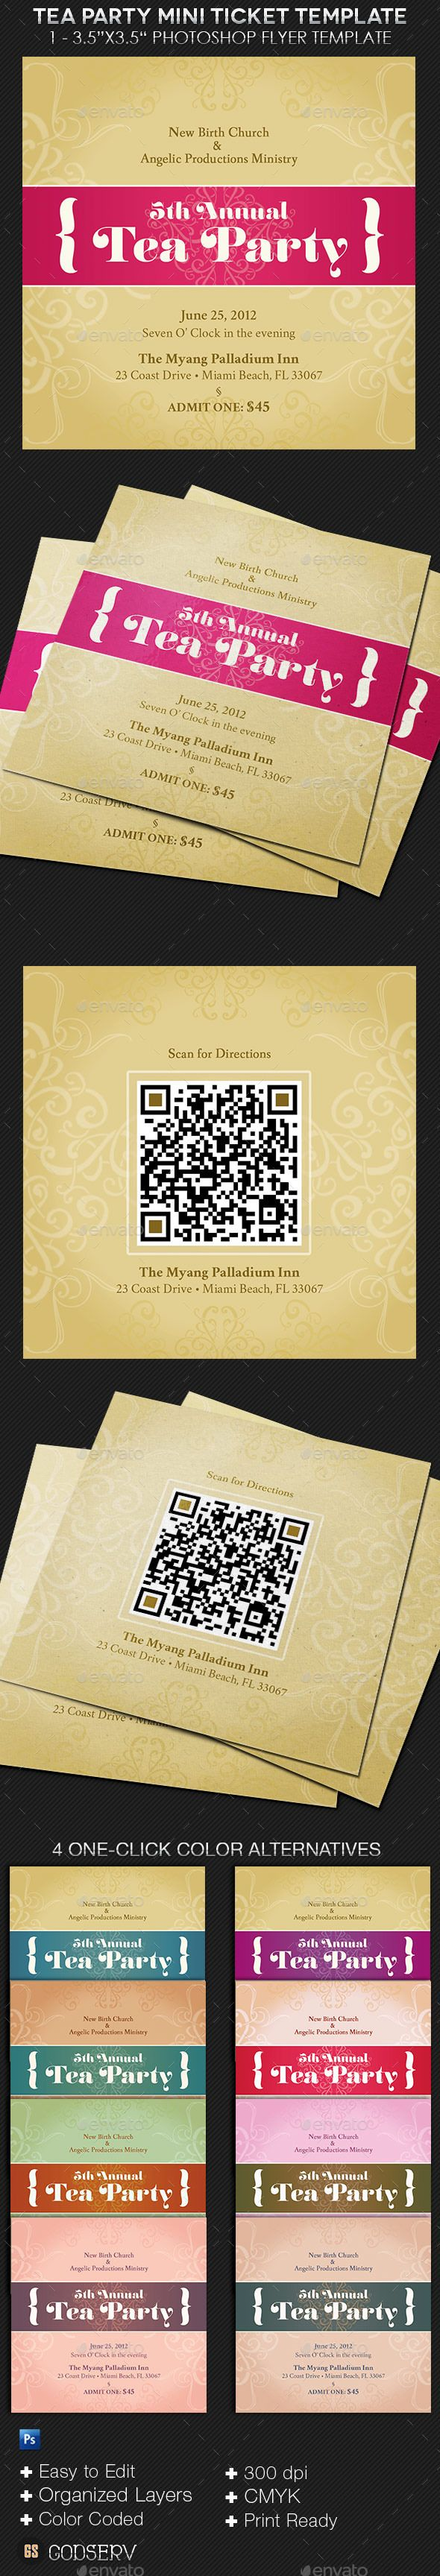 business party invitation letter templates%0A Tea Party Mini Ticket Template